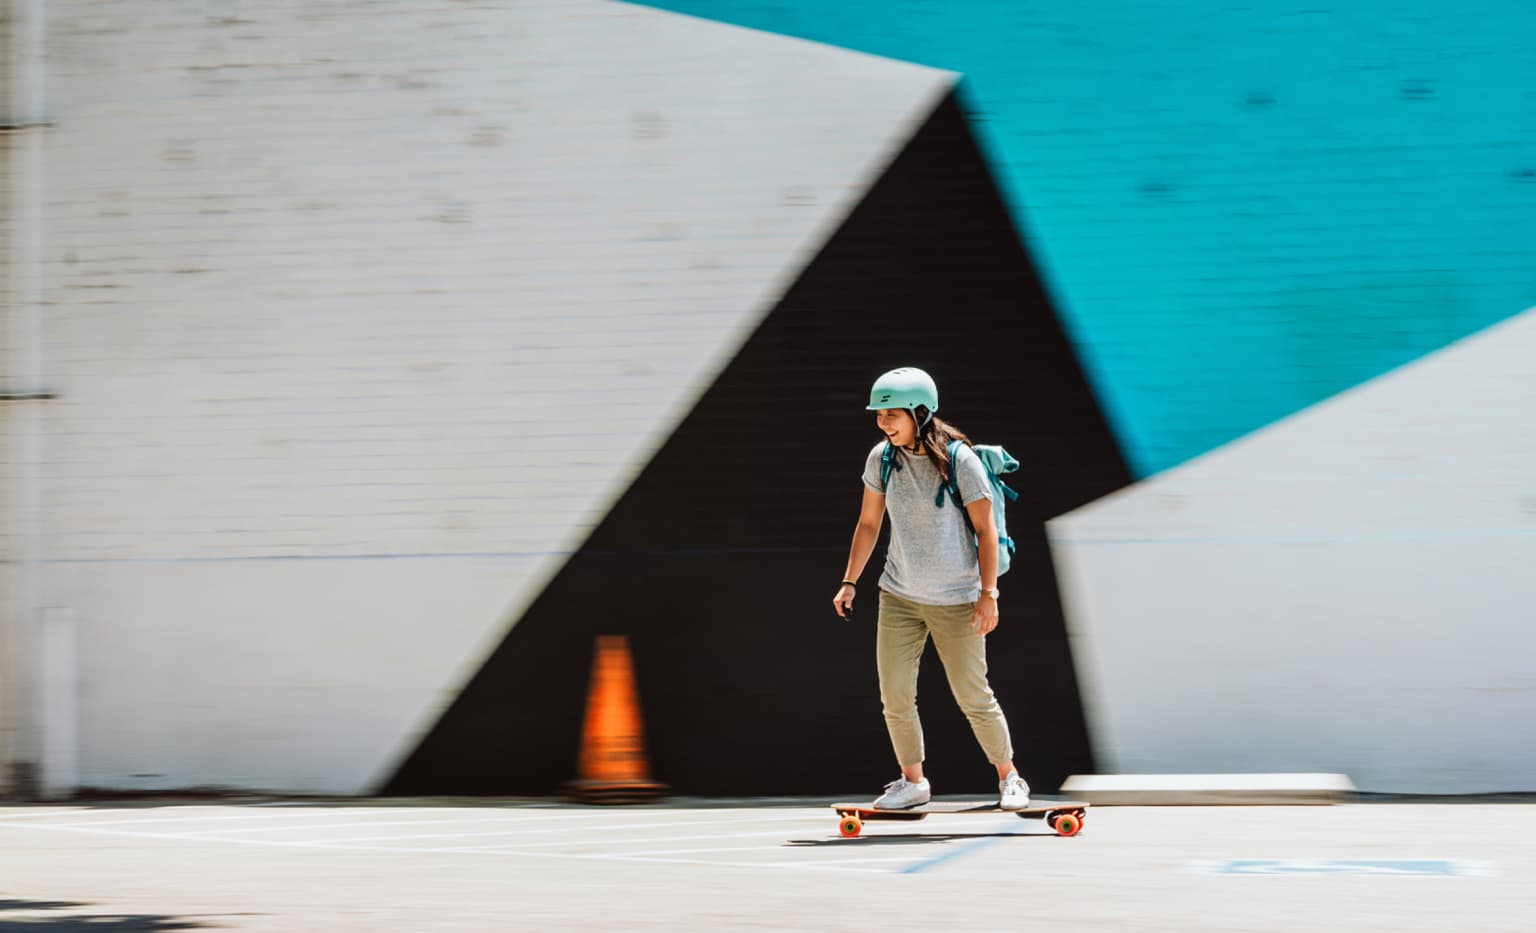 Boosted Boards Branding